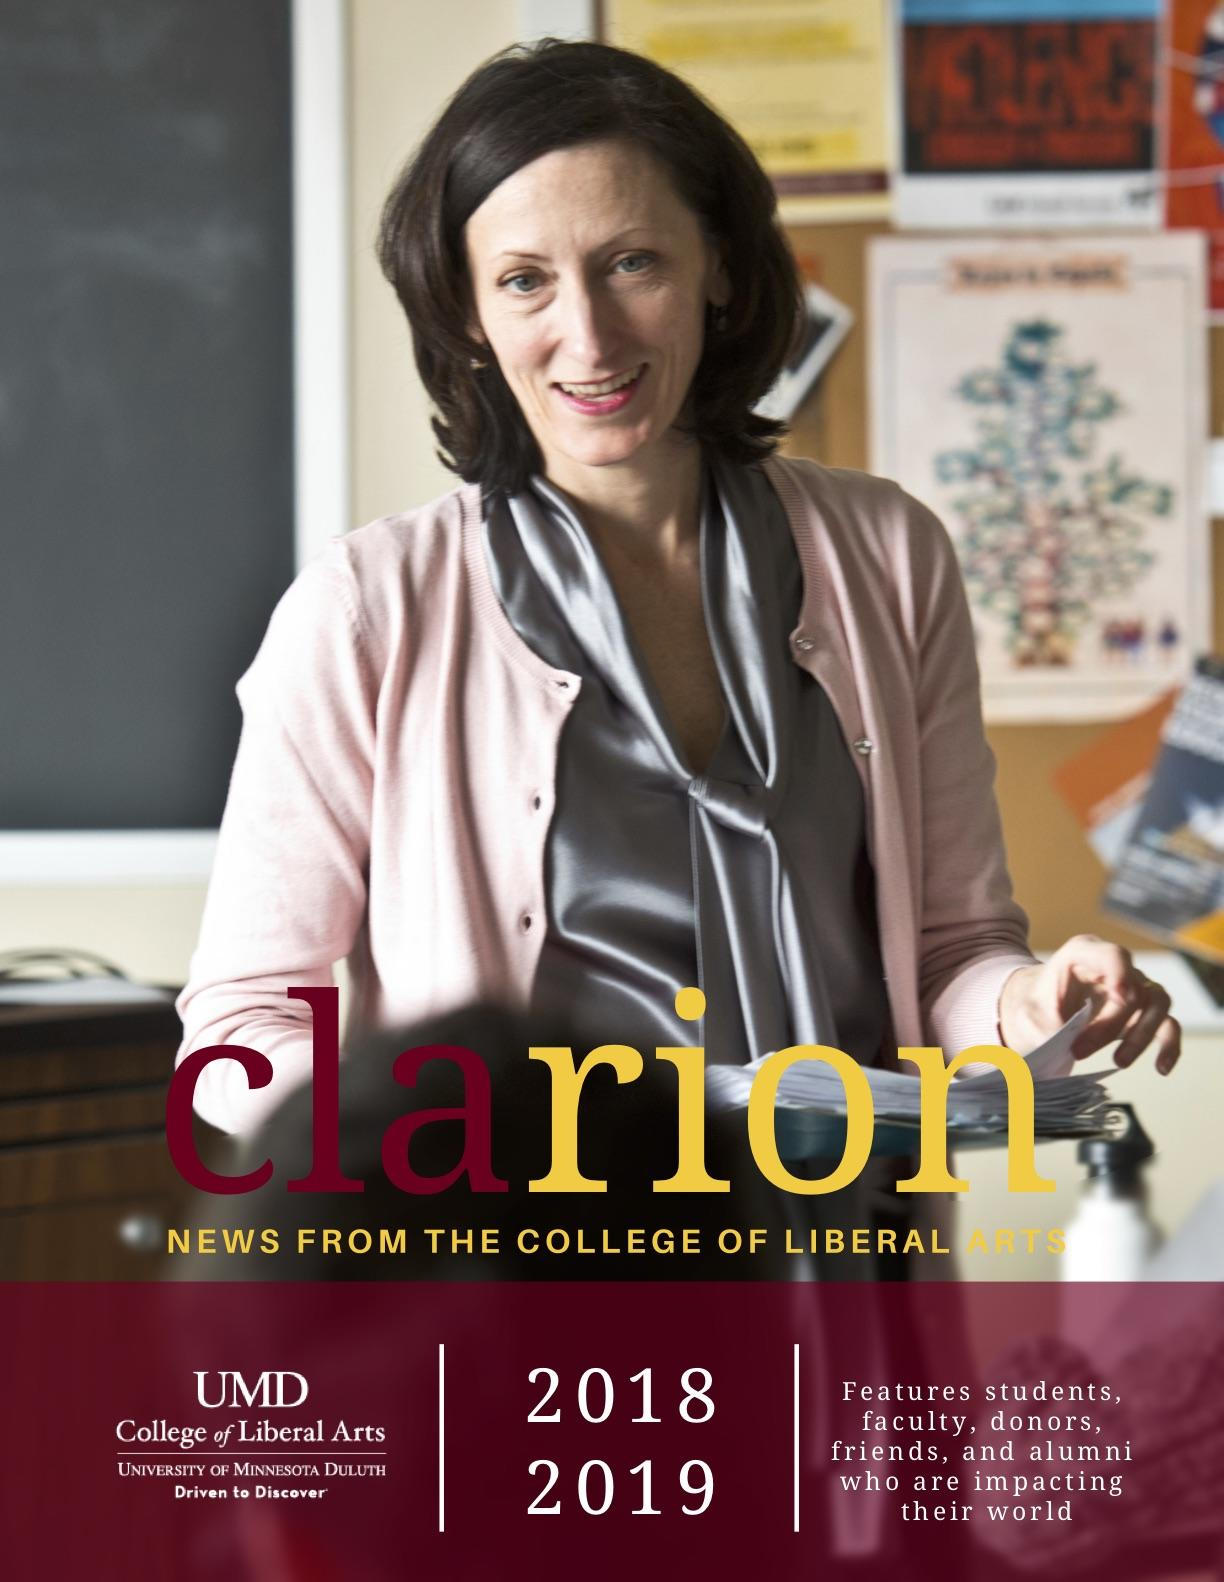 UMD College of Liberal Arts CLArion newsletter 2019